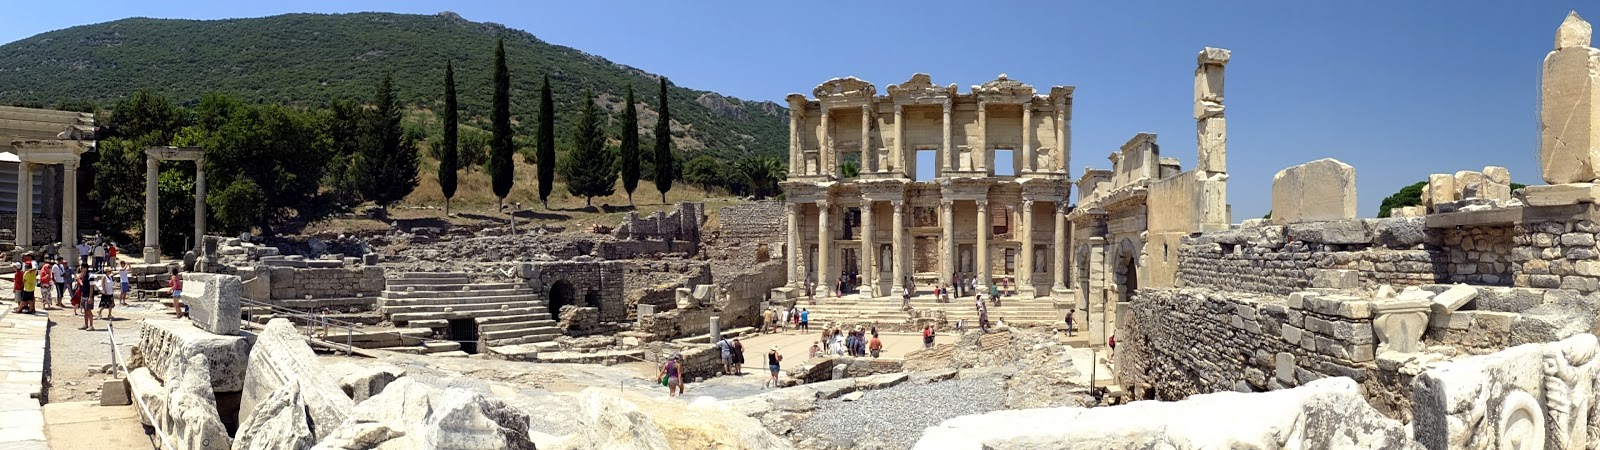 Travel Trip Journey: Ephesus Turkey